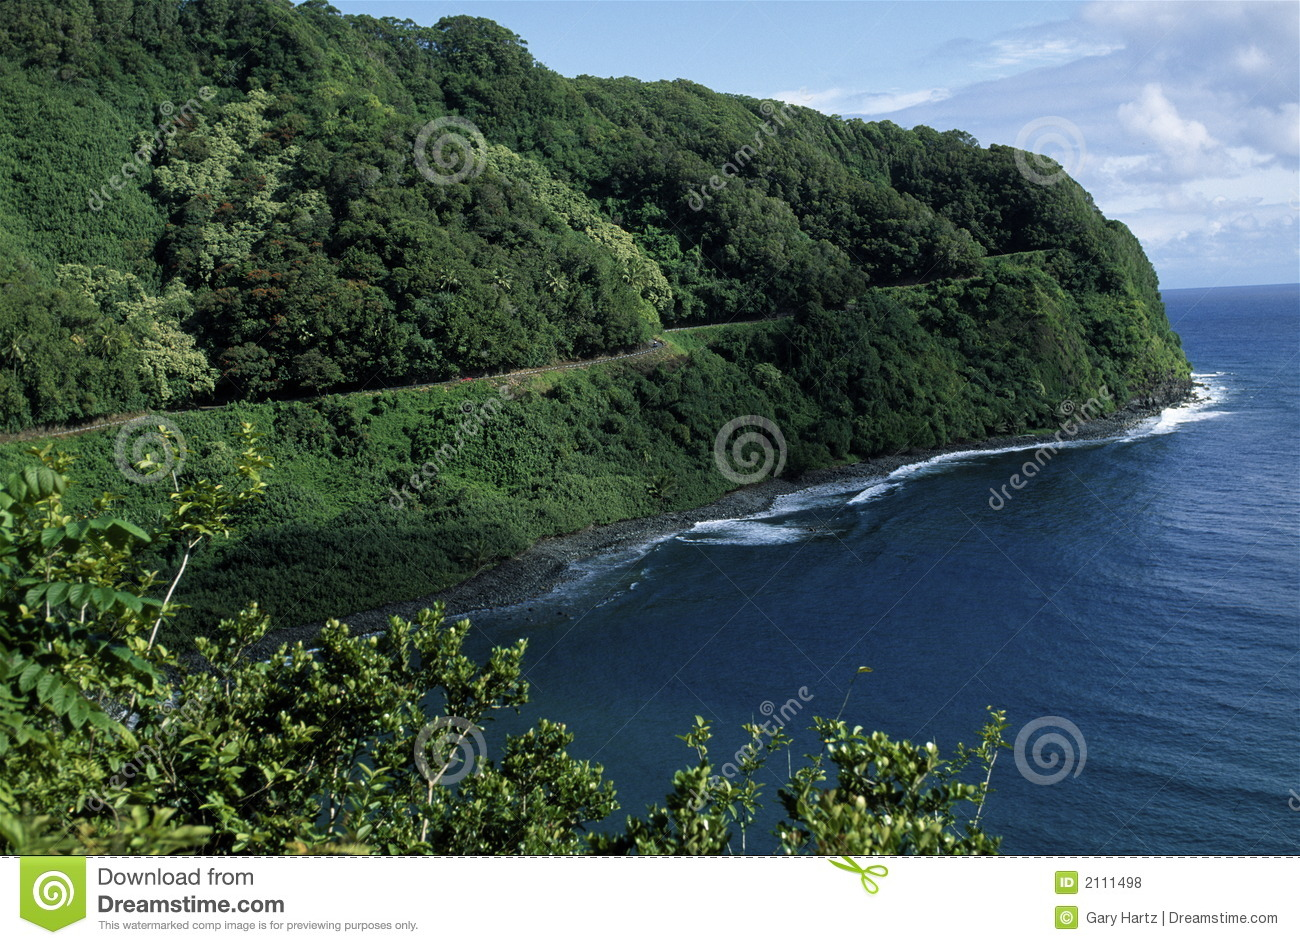 Road To Hana, Maui Hawaii Royalty Free Stock Photos.